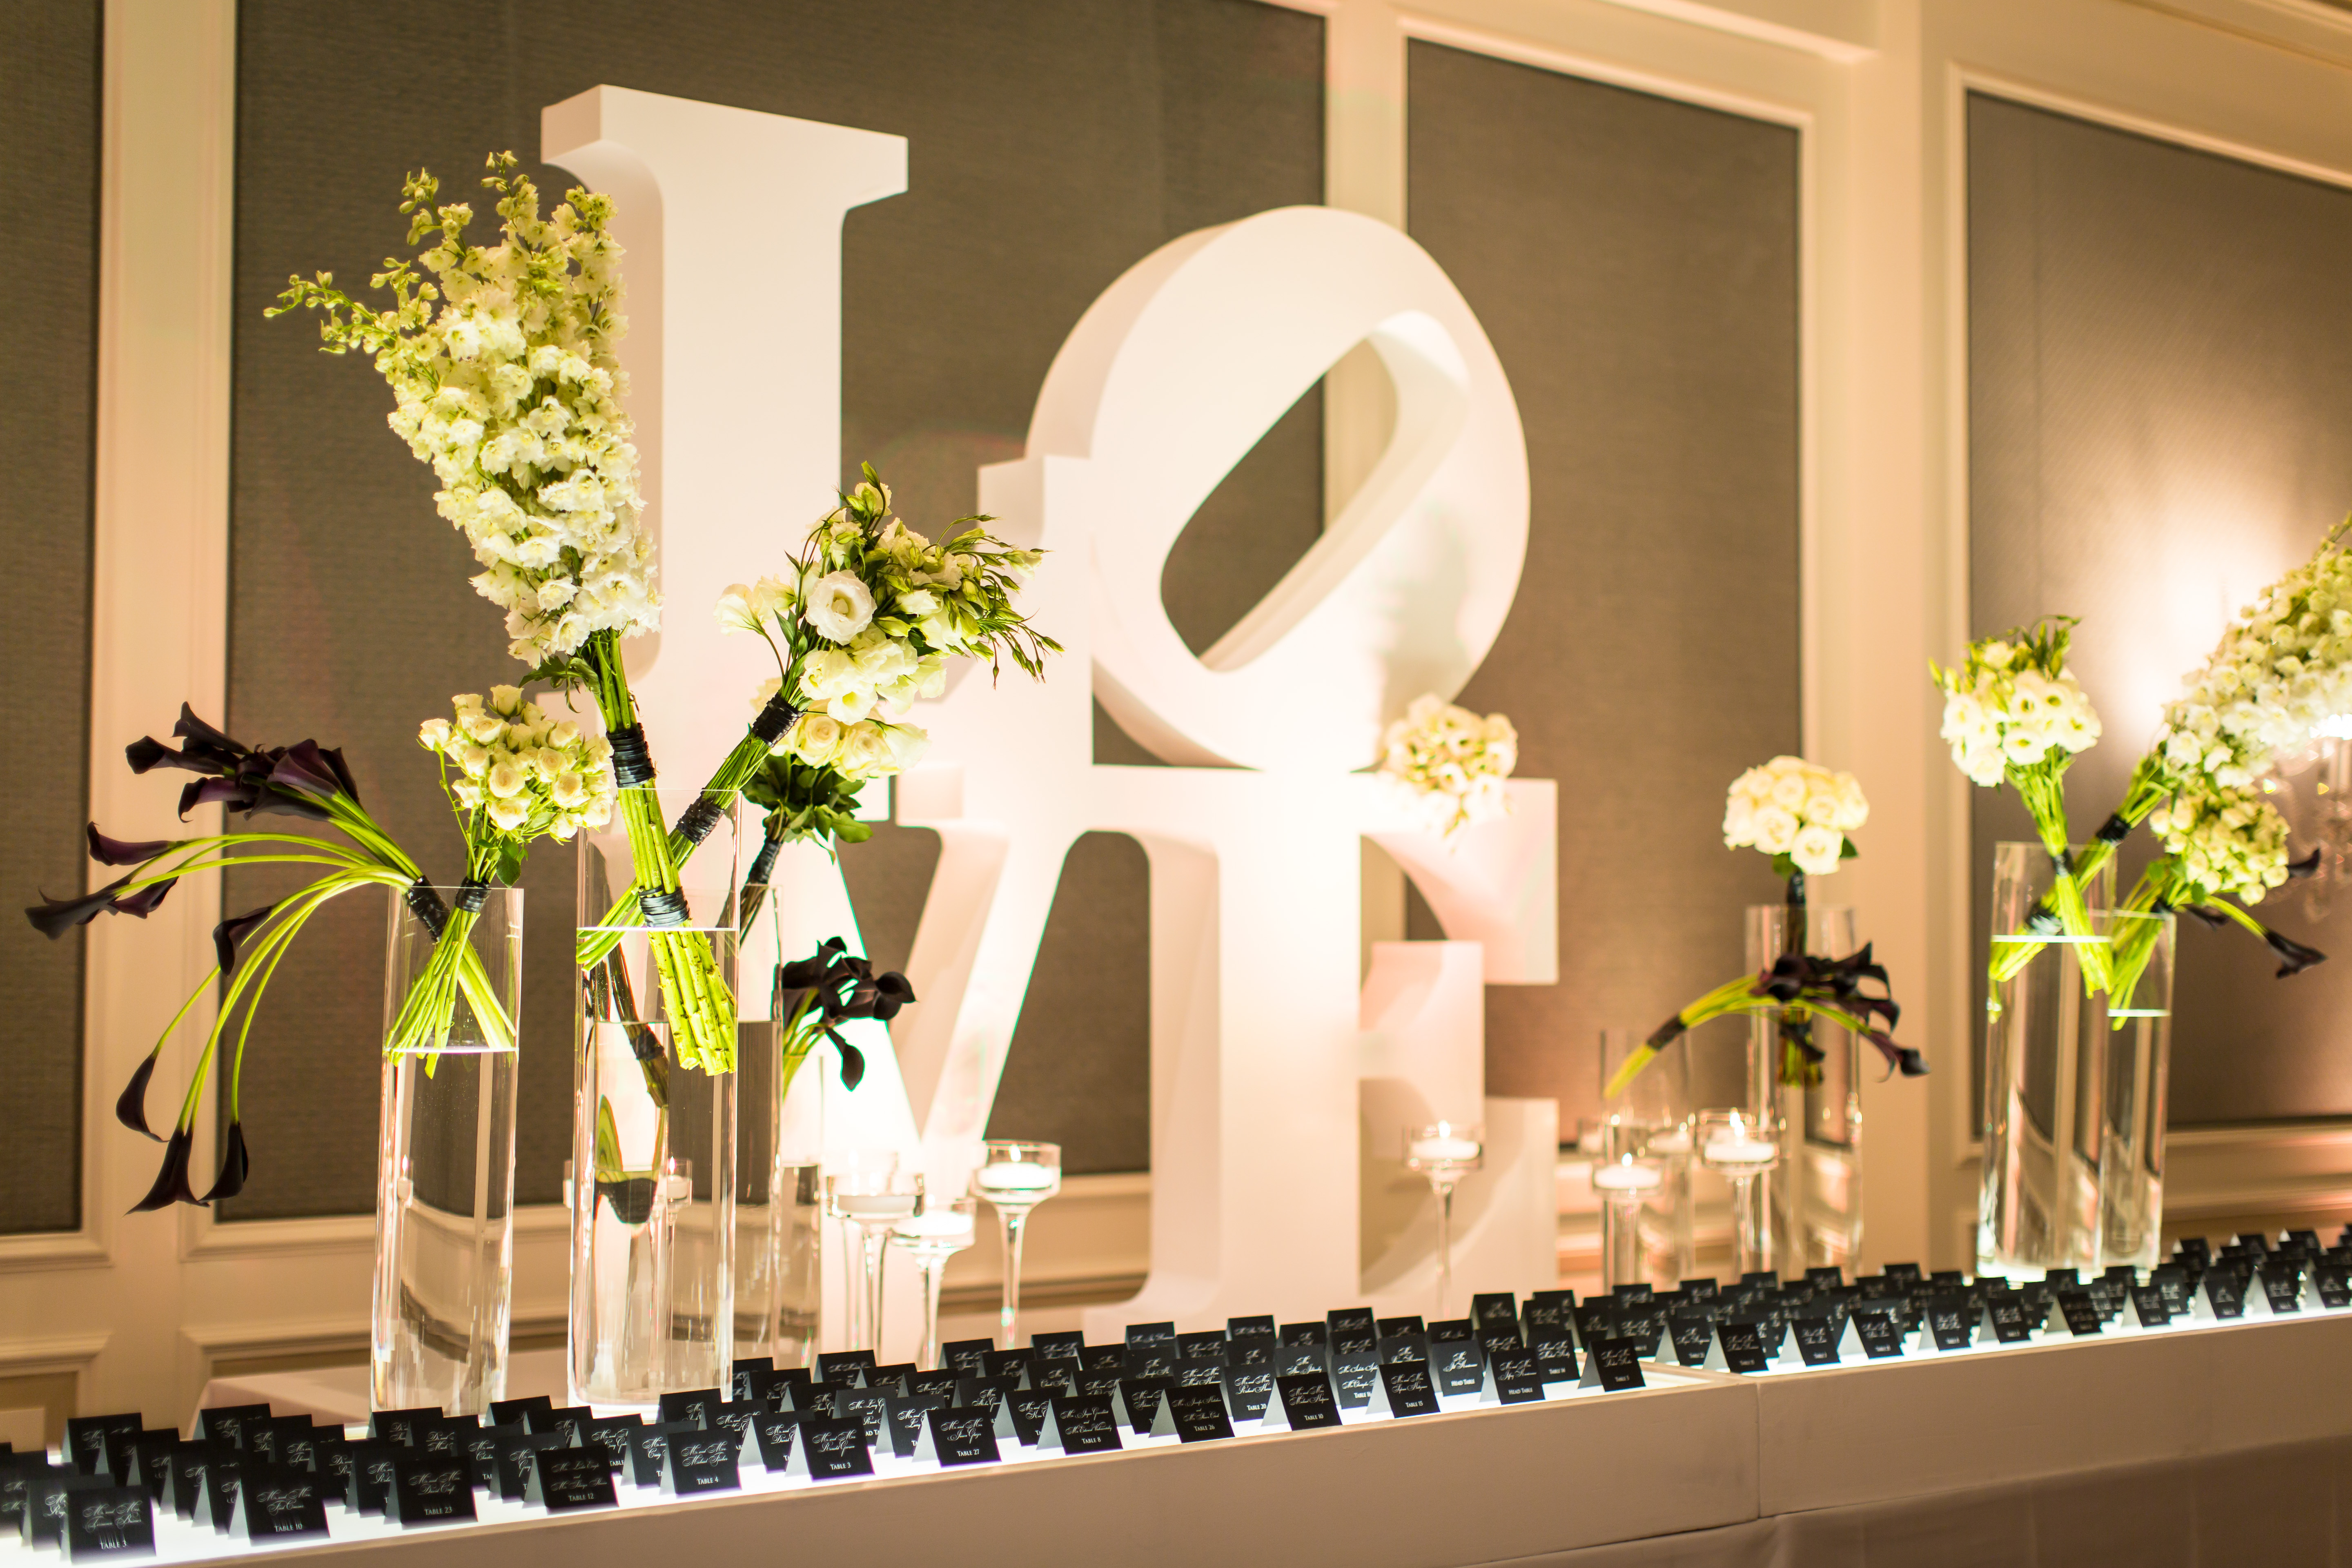 'LOVE' Wedding at the St Louis Ritz Carlton - Festive Couture Floral